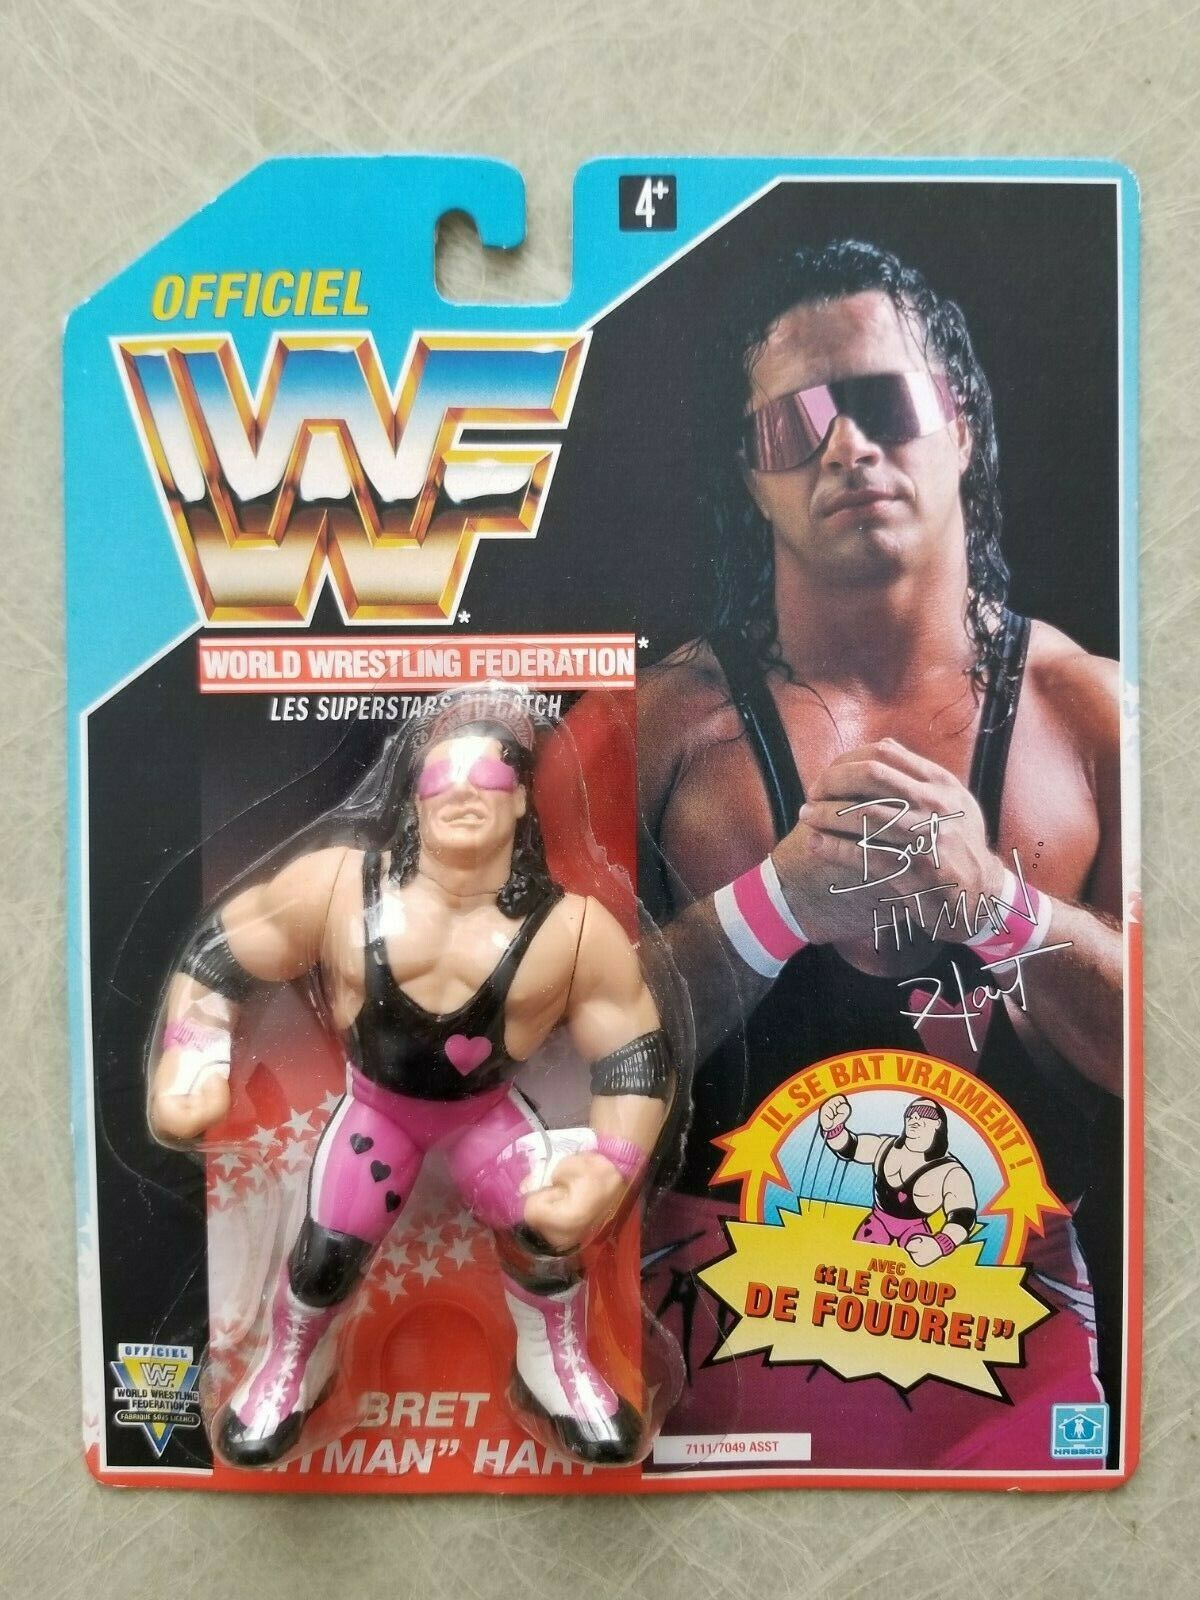 RARE WWF 1992 BRET HITMAN HART Series 4 bluee Card Hasbro Foreign French Card